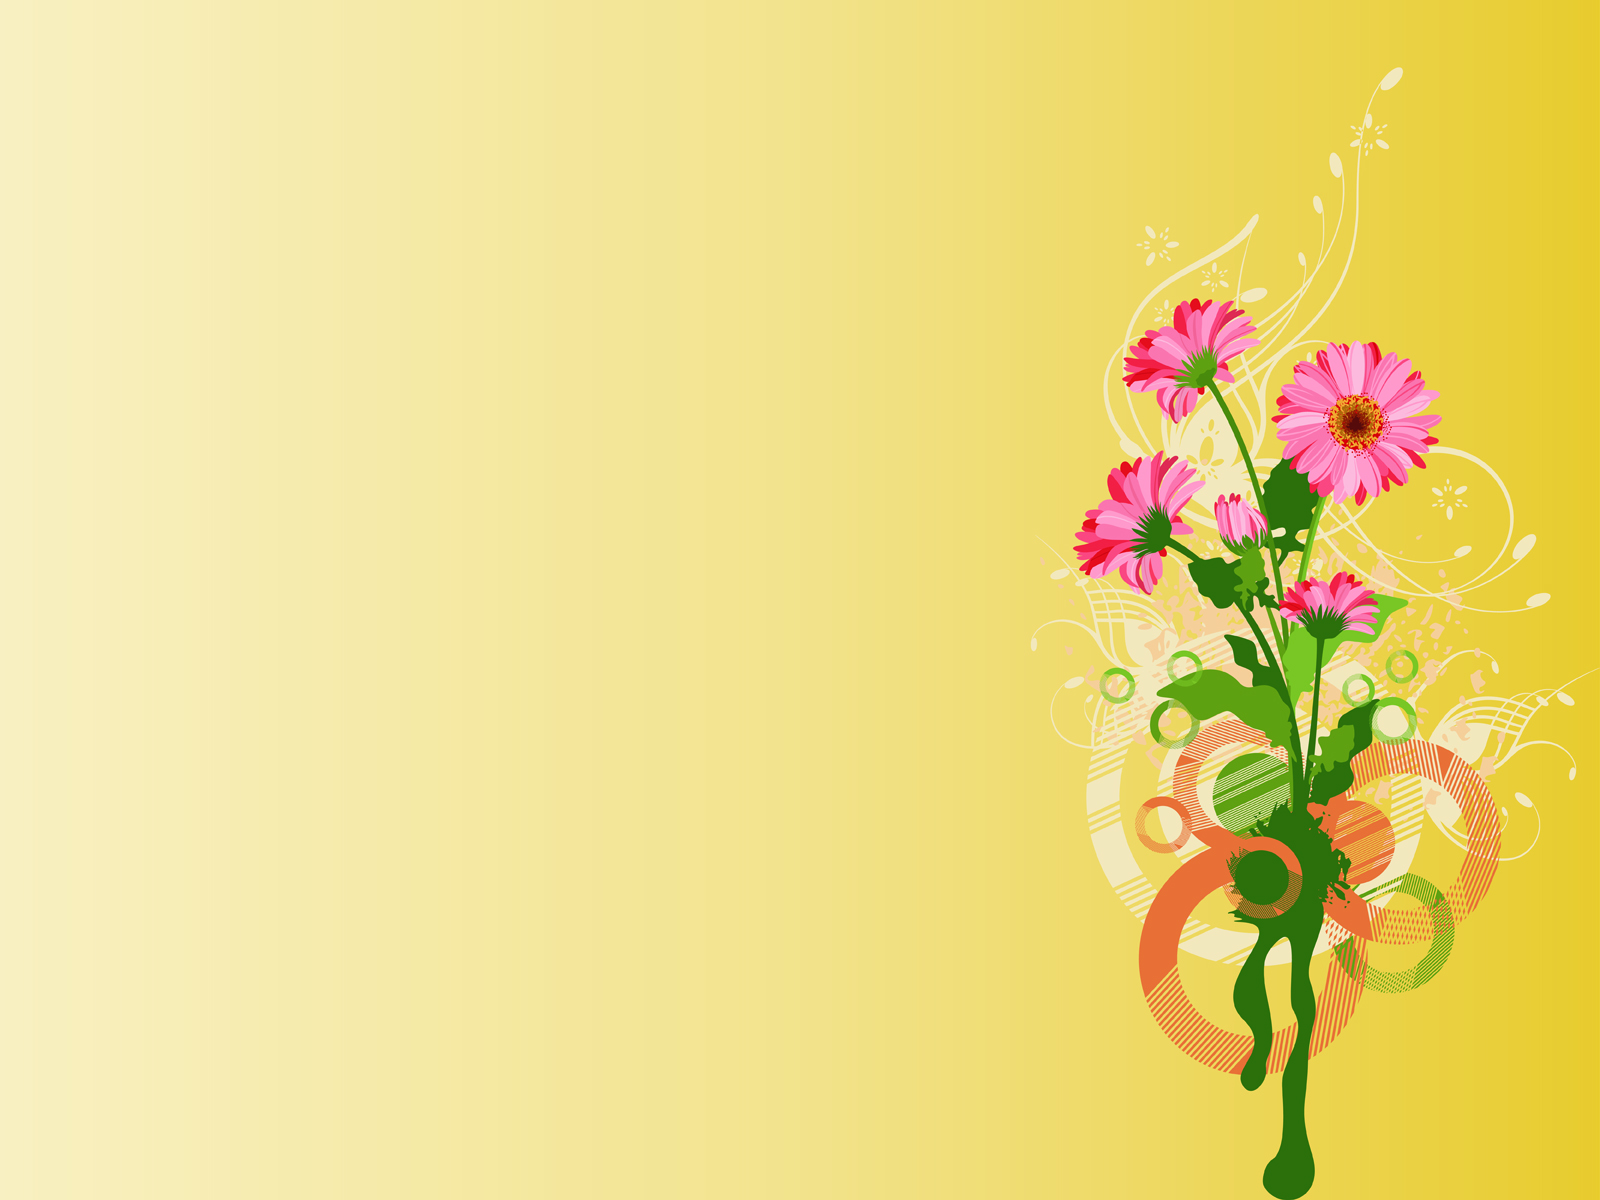 Pink flowers on yellow ppt backgrounds flowers green nature pink flowers on yellow backgrounds mightylinksfo Choice Image